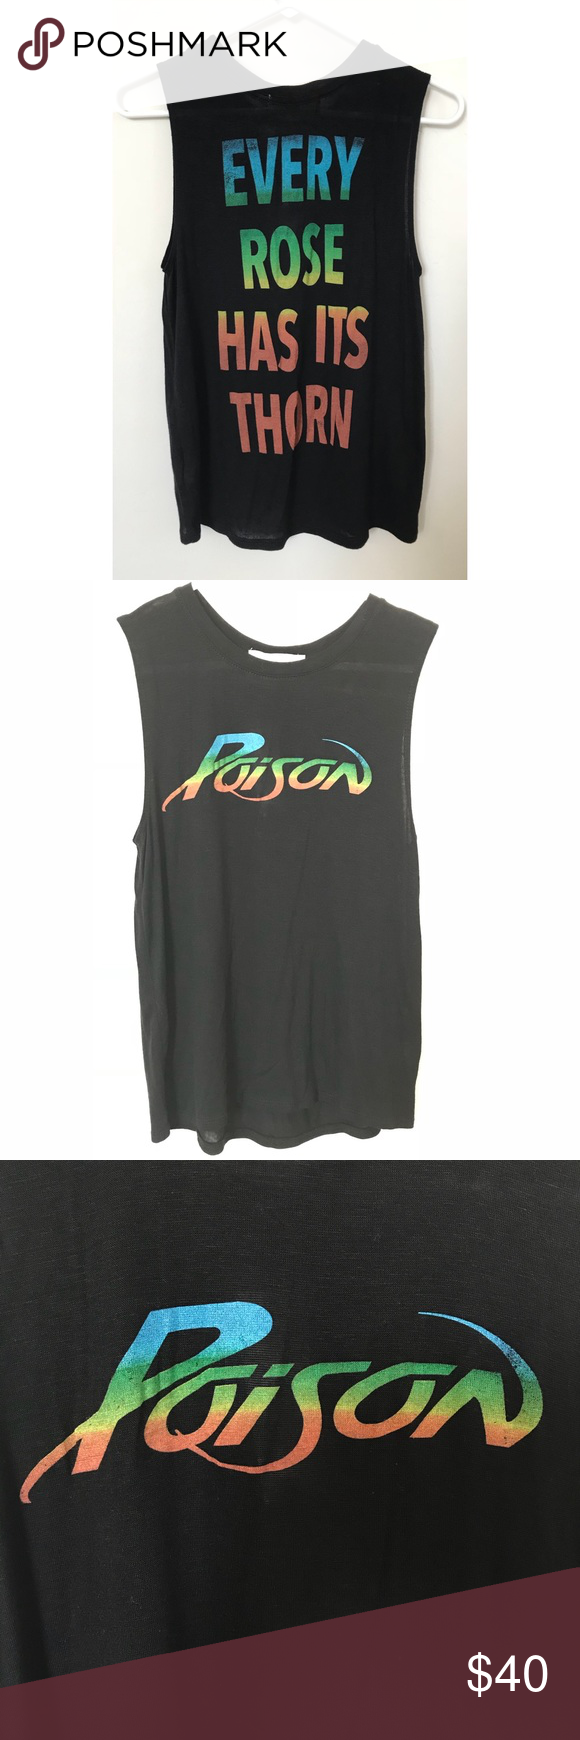 "82a6e62c008300 🤘 POISON Sleeveless Top 🤘 POISON sleeveless top. 🤘""POISON"" on the ..."